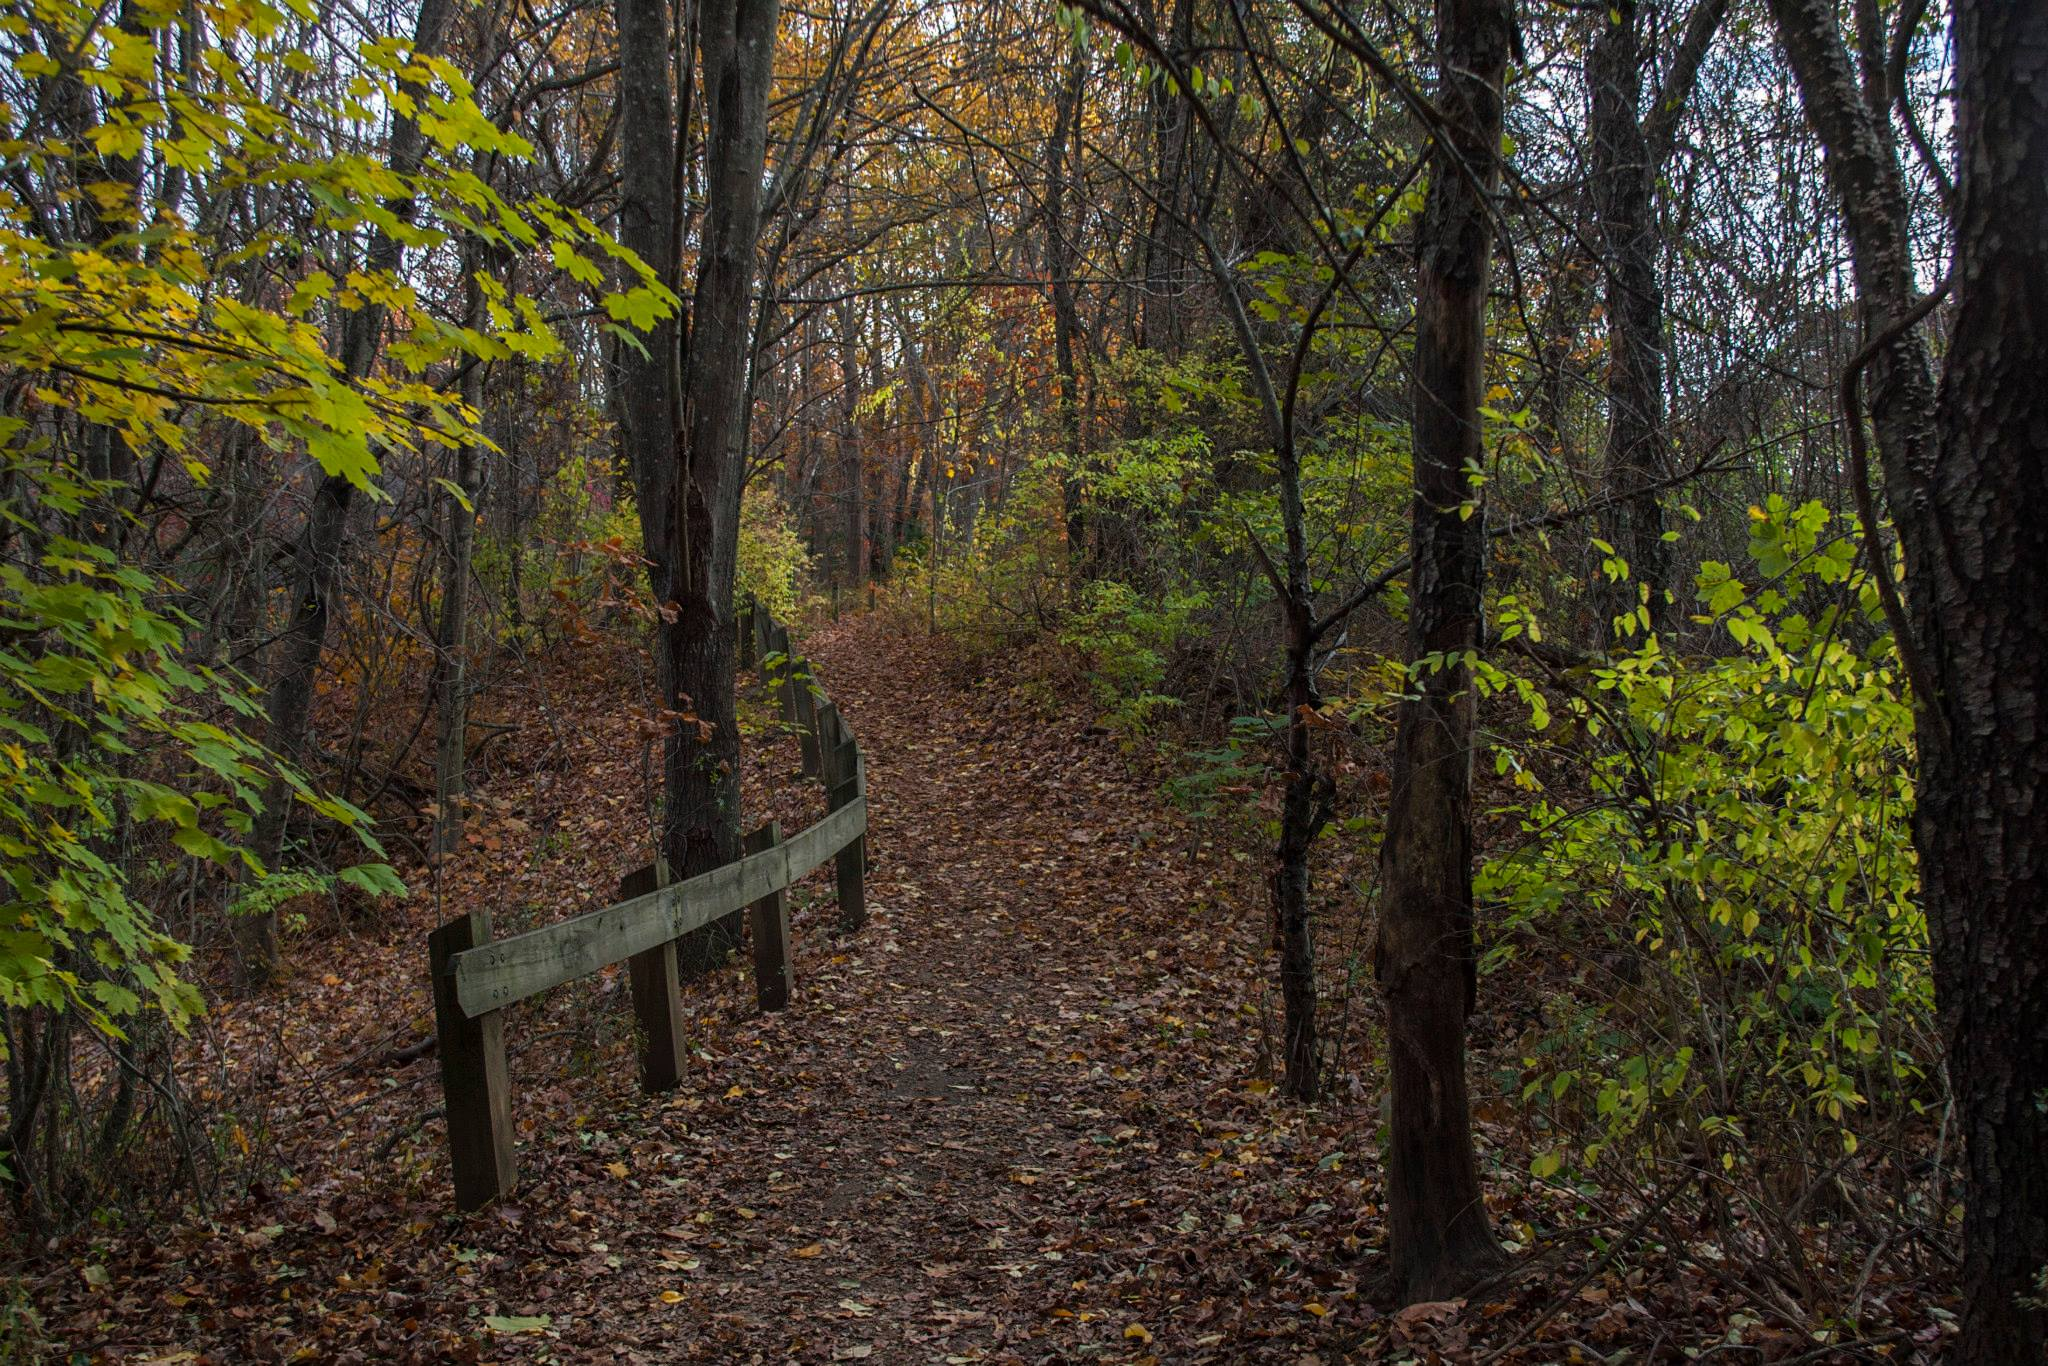 Hinckley Park offers quiet trails, ideal for dog walking